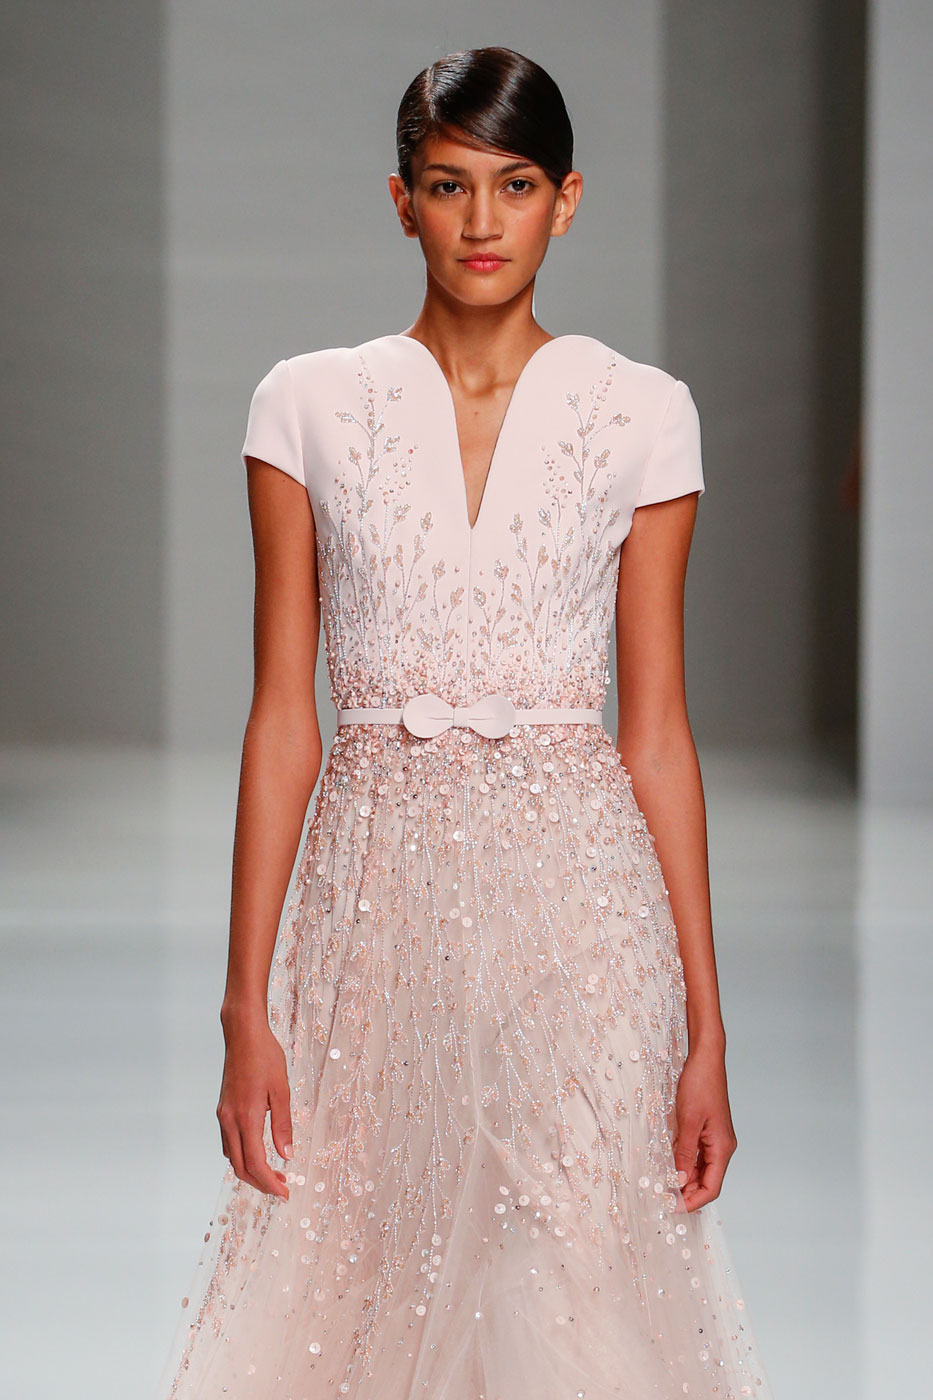 Georges-Hobeika-fashion-runway-show-haute-couture-paris-spring-2015-the-impression-52